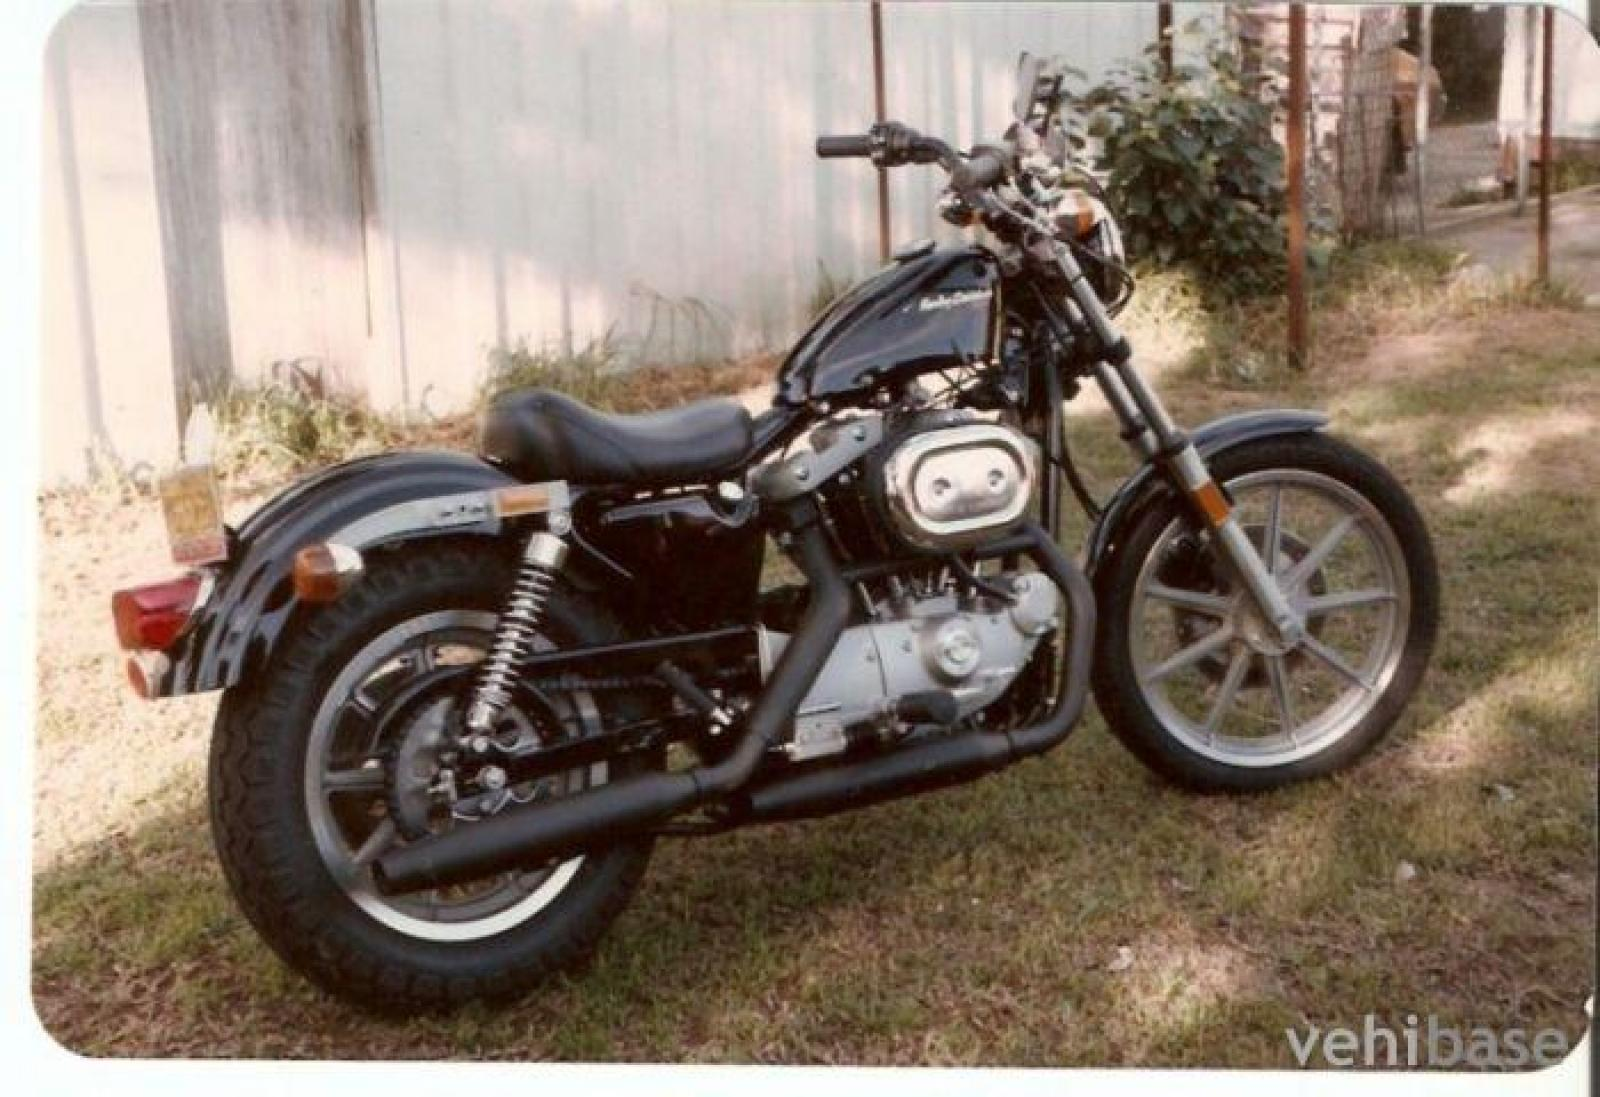 Sportster Xlx Wiring Diagram on 1982 harley-davidson sportster, harley-davidson ironhead sportster, dual carb sportster, xl sportster, 1971 xlh sportster, iron head sportster, riding a sportster, 1957 harley-davidson sportster, 1990 harley-davidson sportster, 1980 ironhead sportster, 1981 harley-davidson sportster, 83 ironhead sportster, 83 harley sportster, chopped sportster,